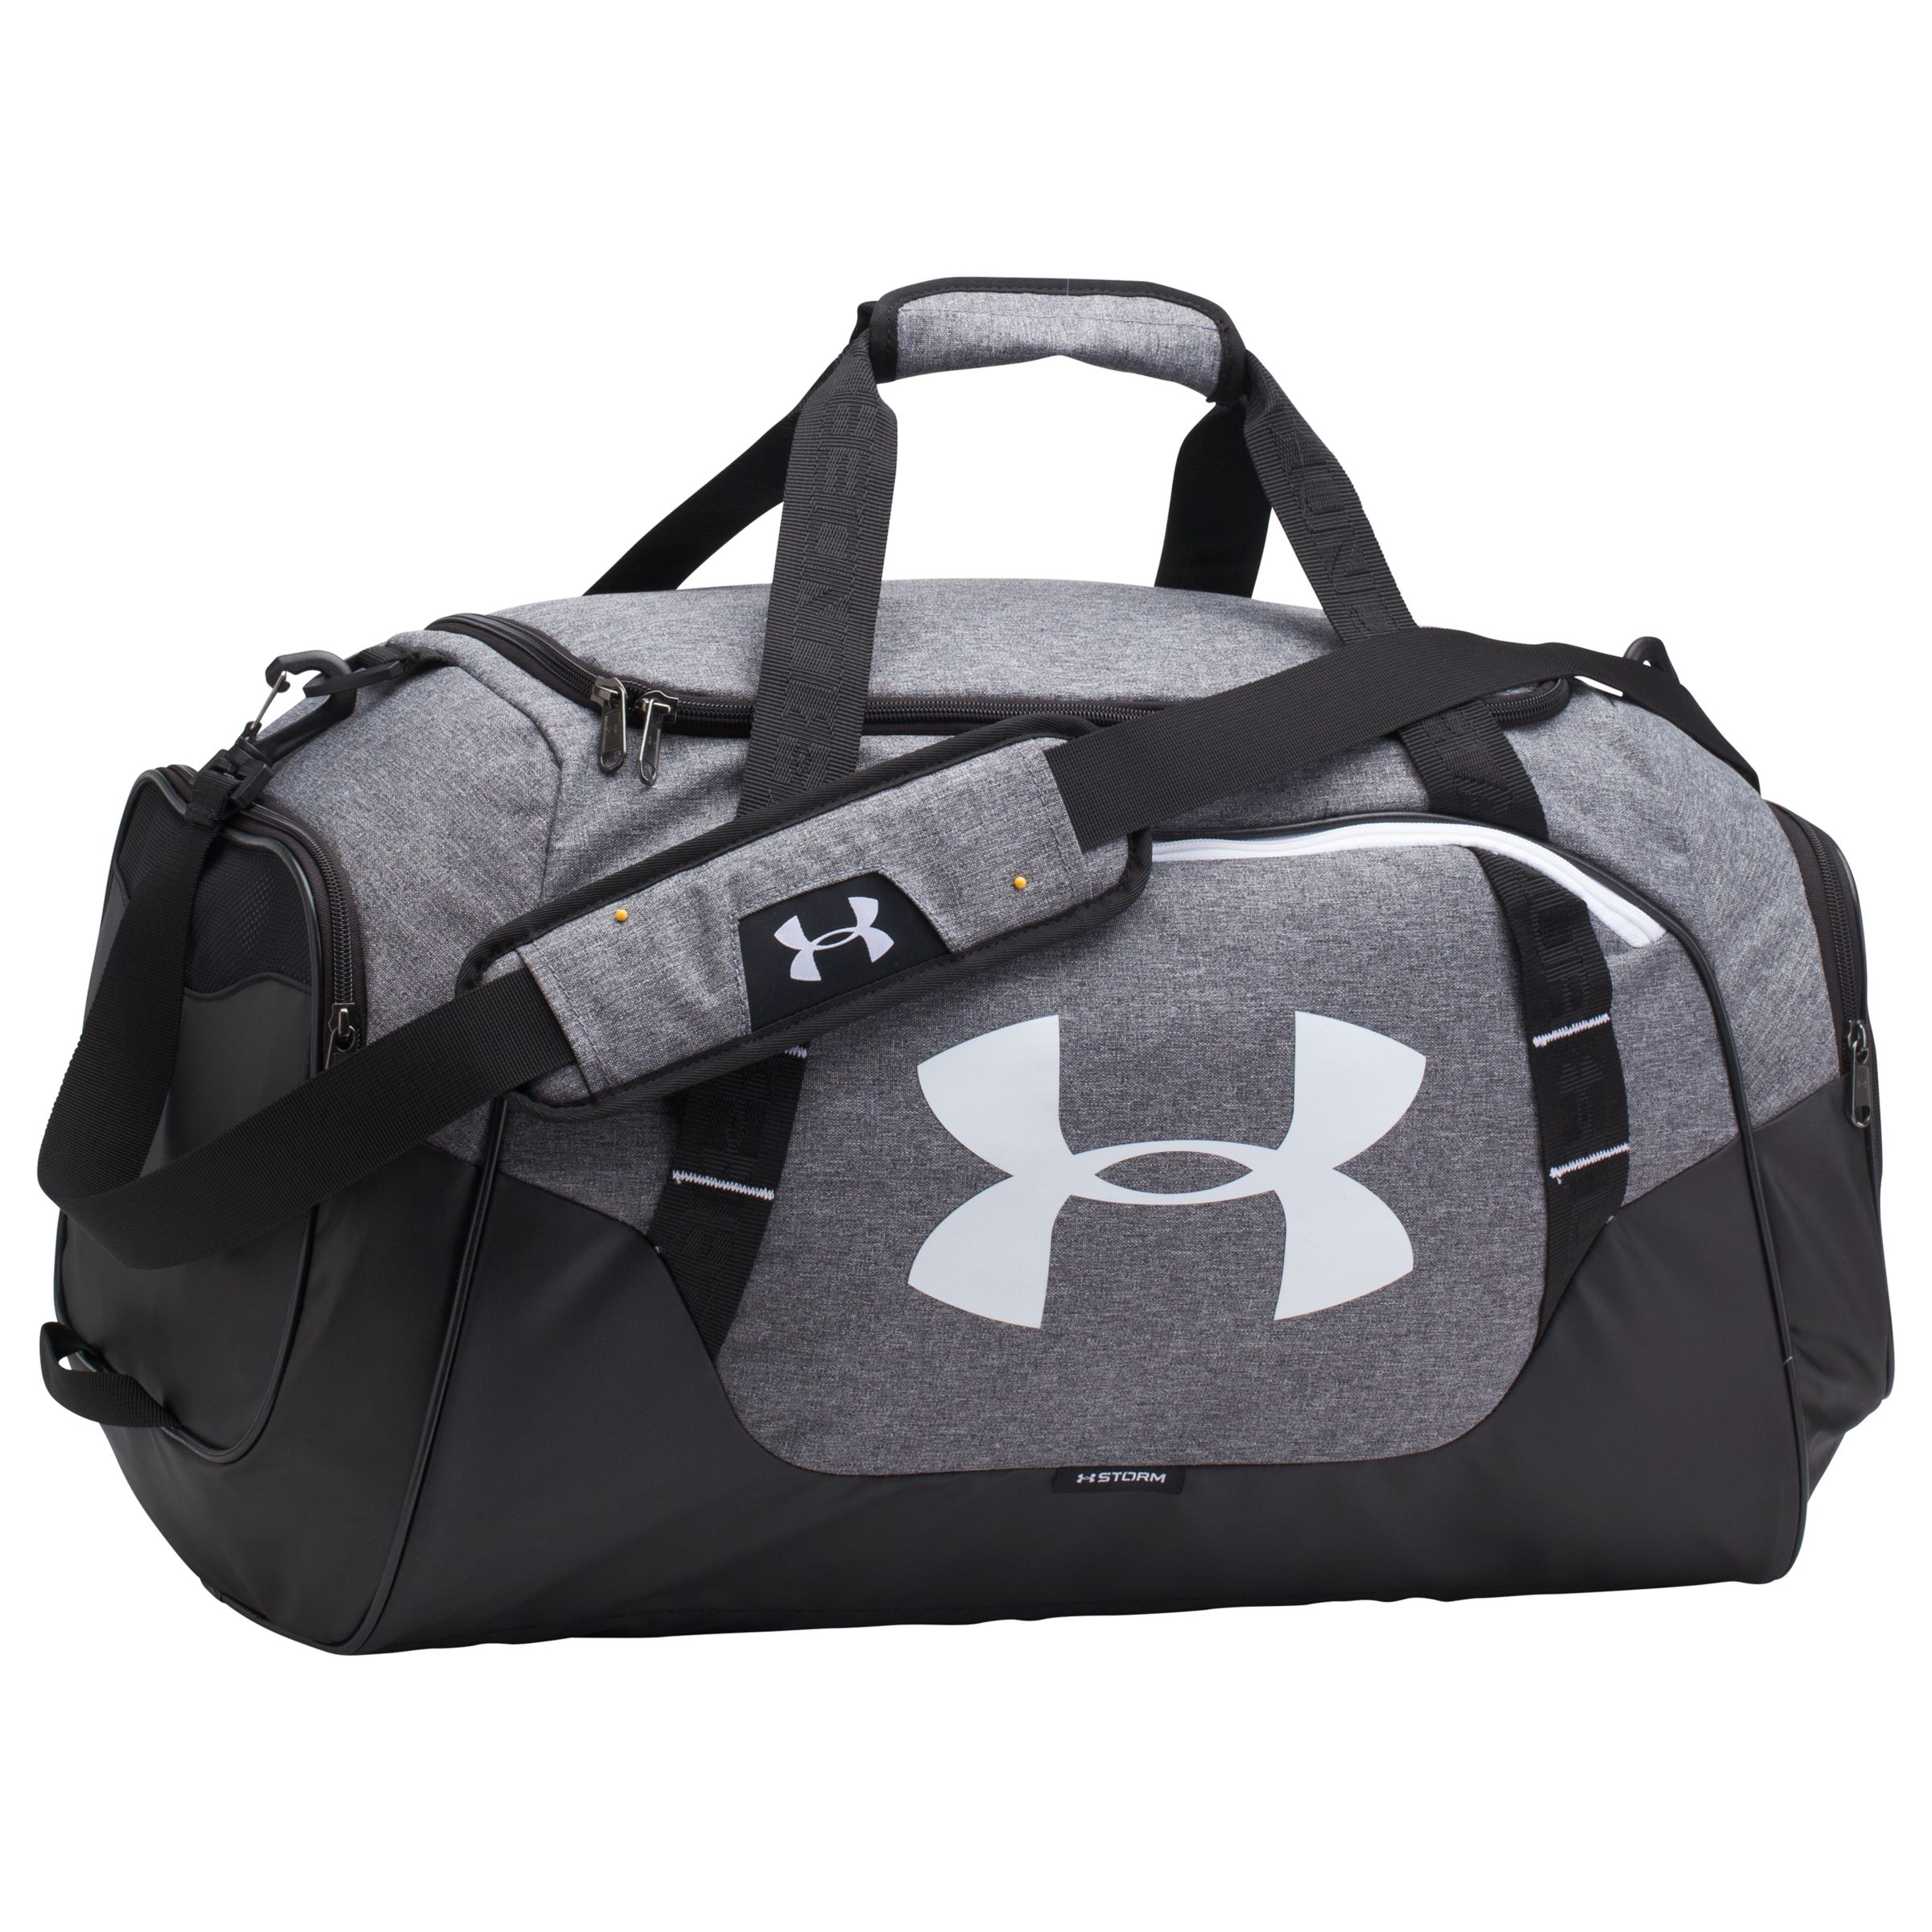 c2f8e7a6a6f Under Armour Storm Undeniable 3.0 Duffle Bag